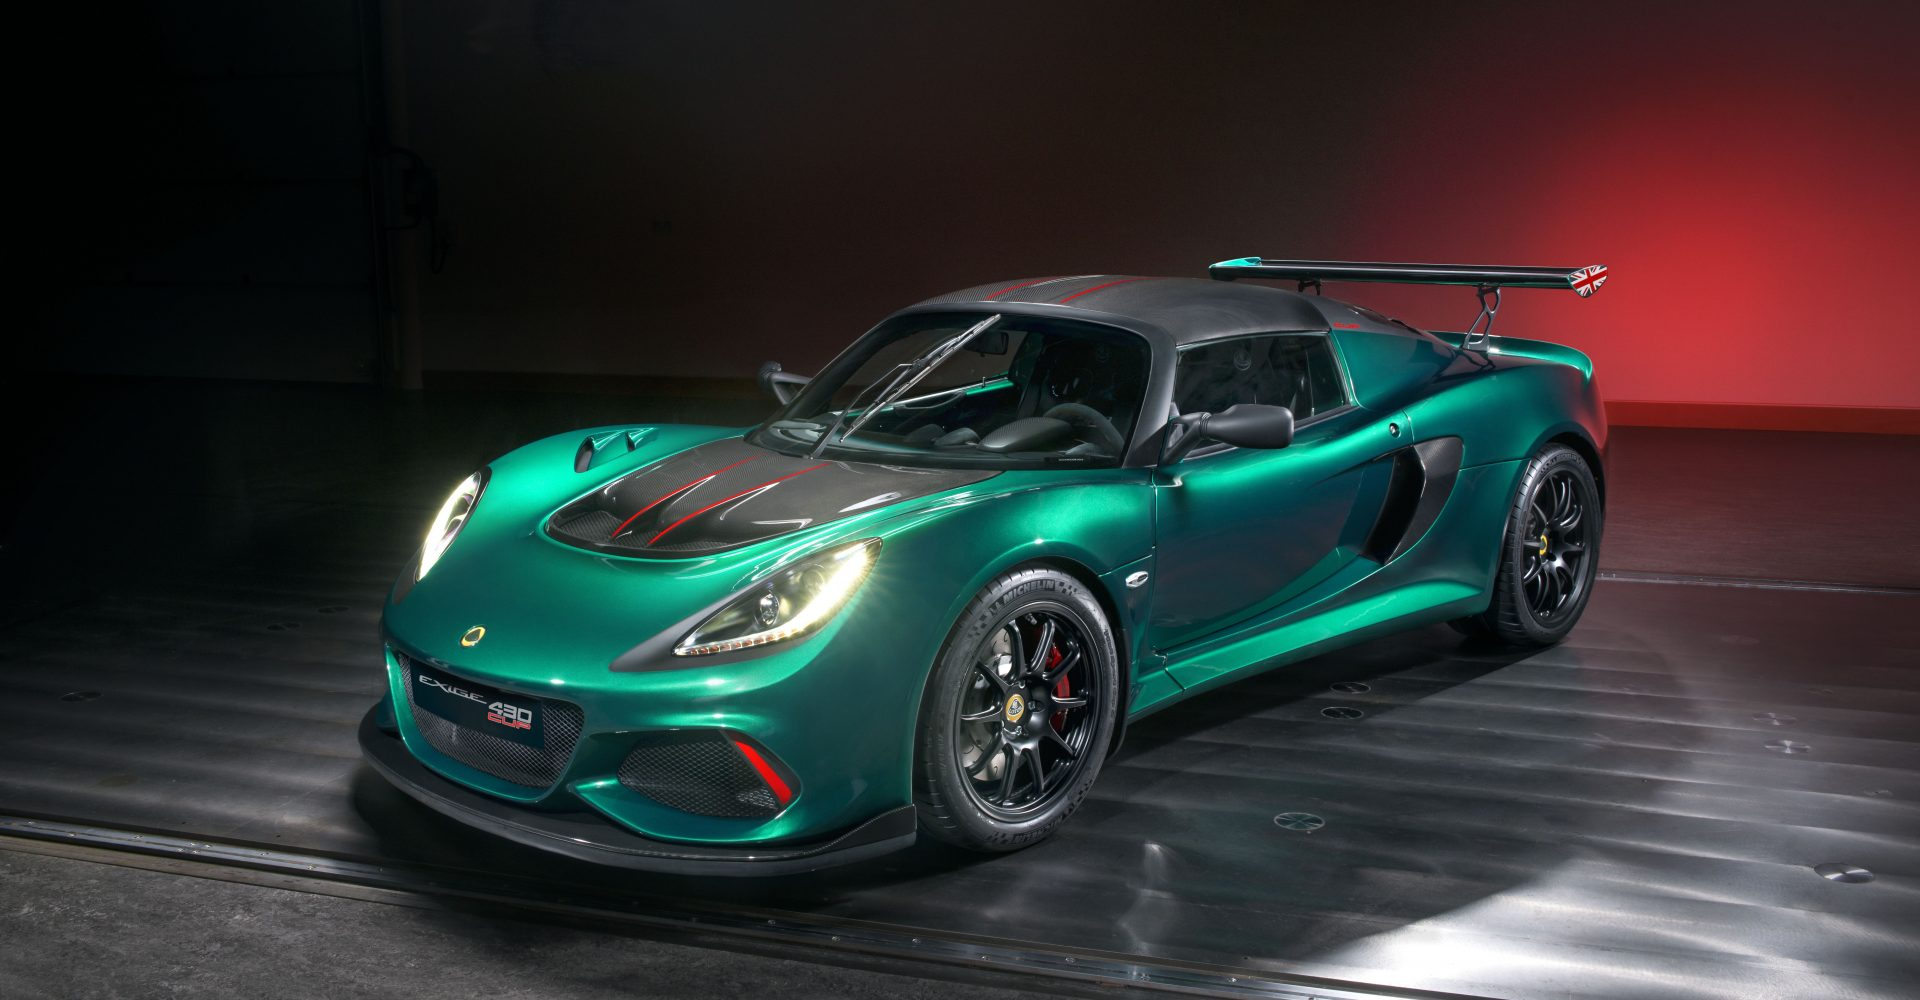 Lotus reveals yet another special-edition Exige